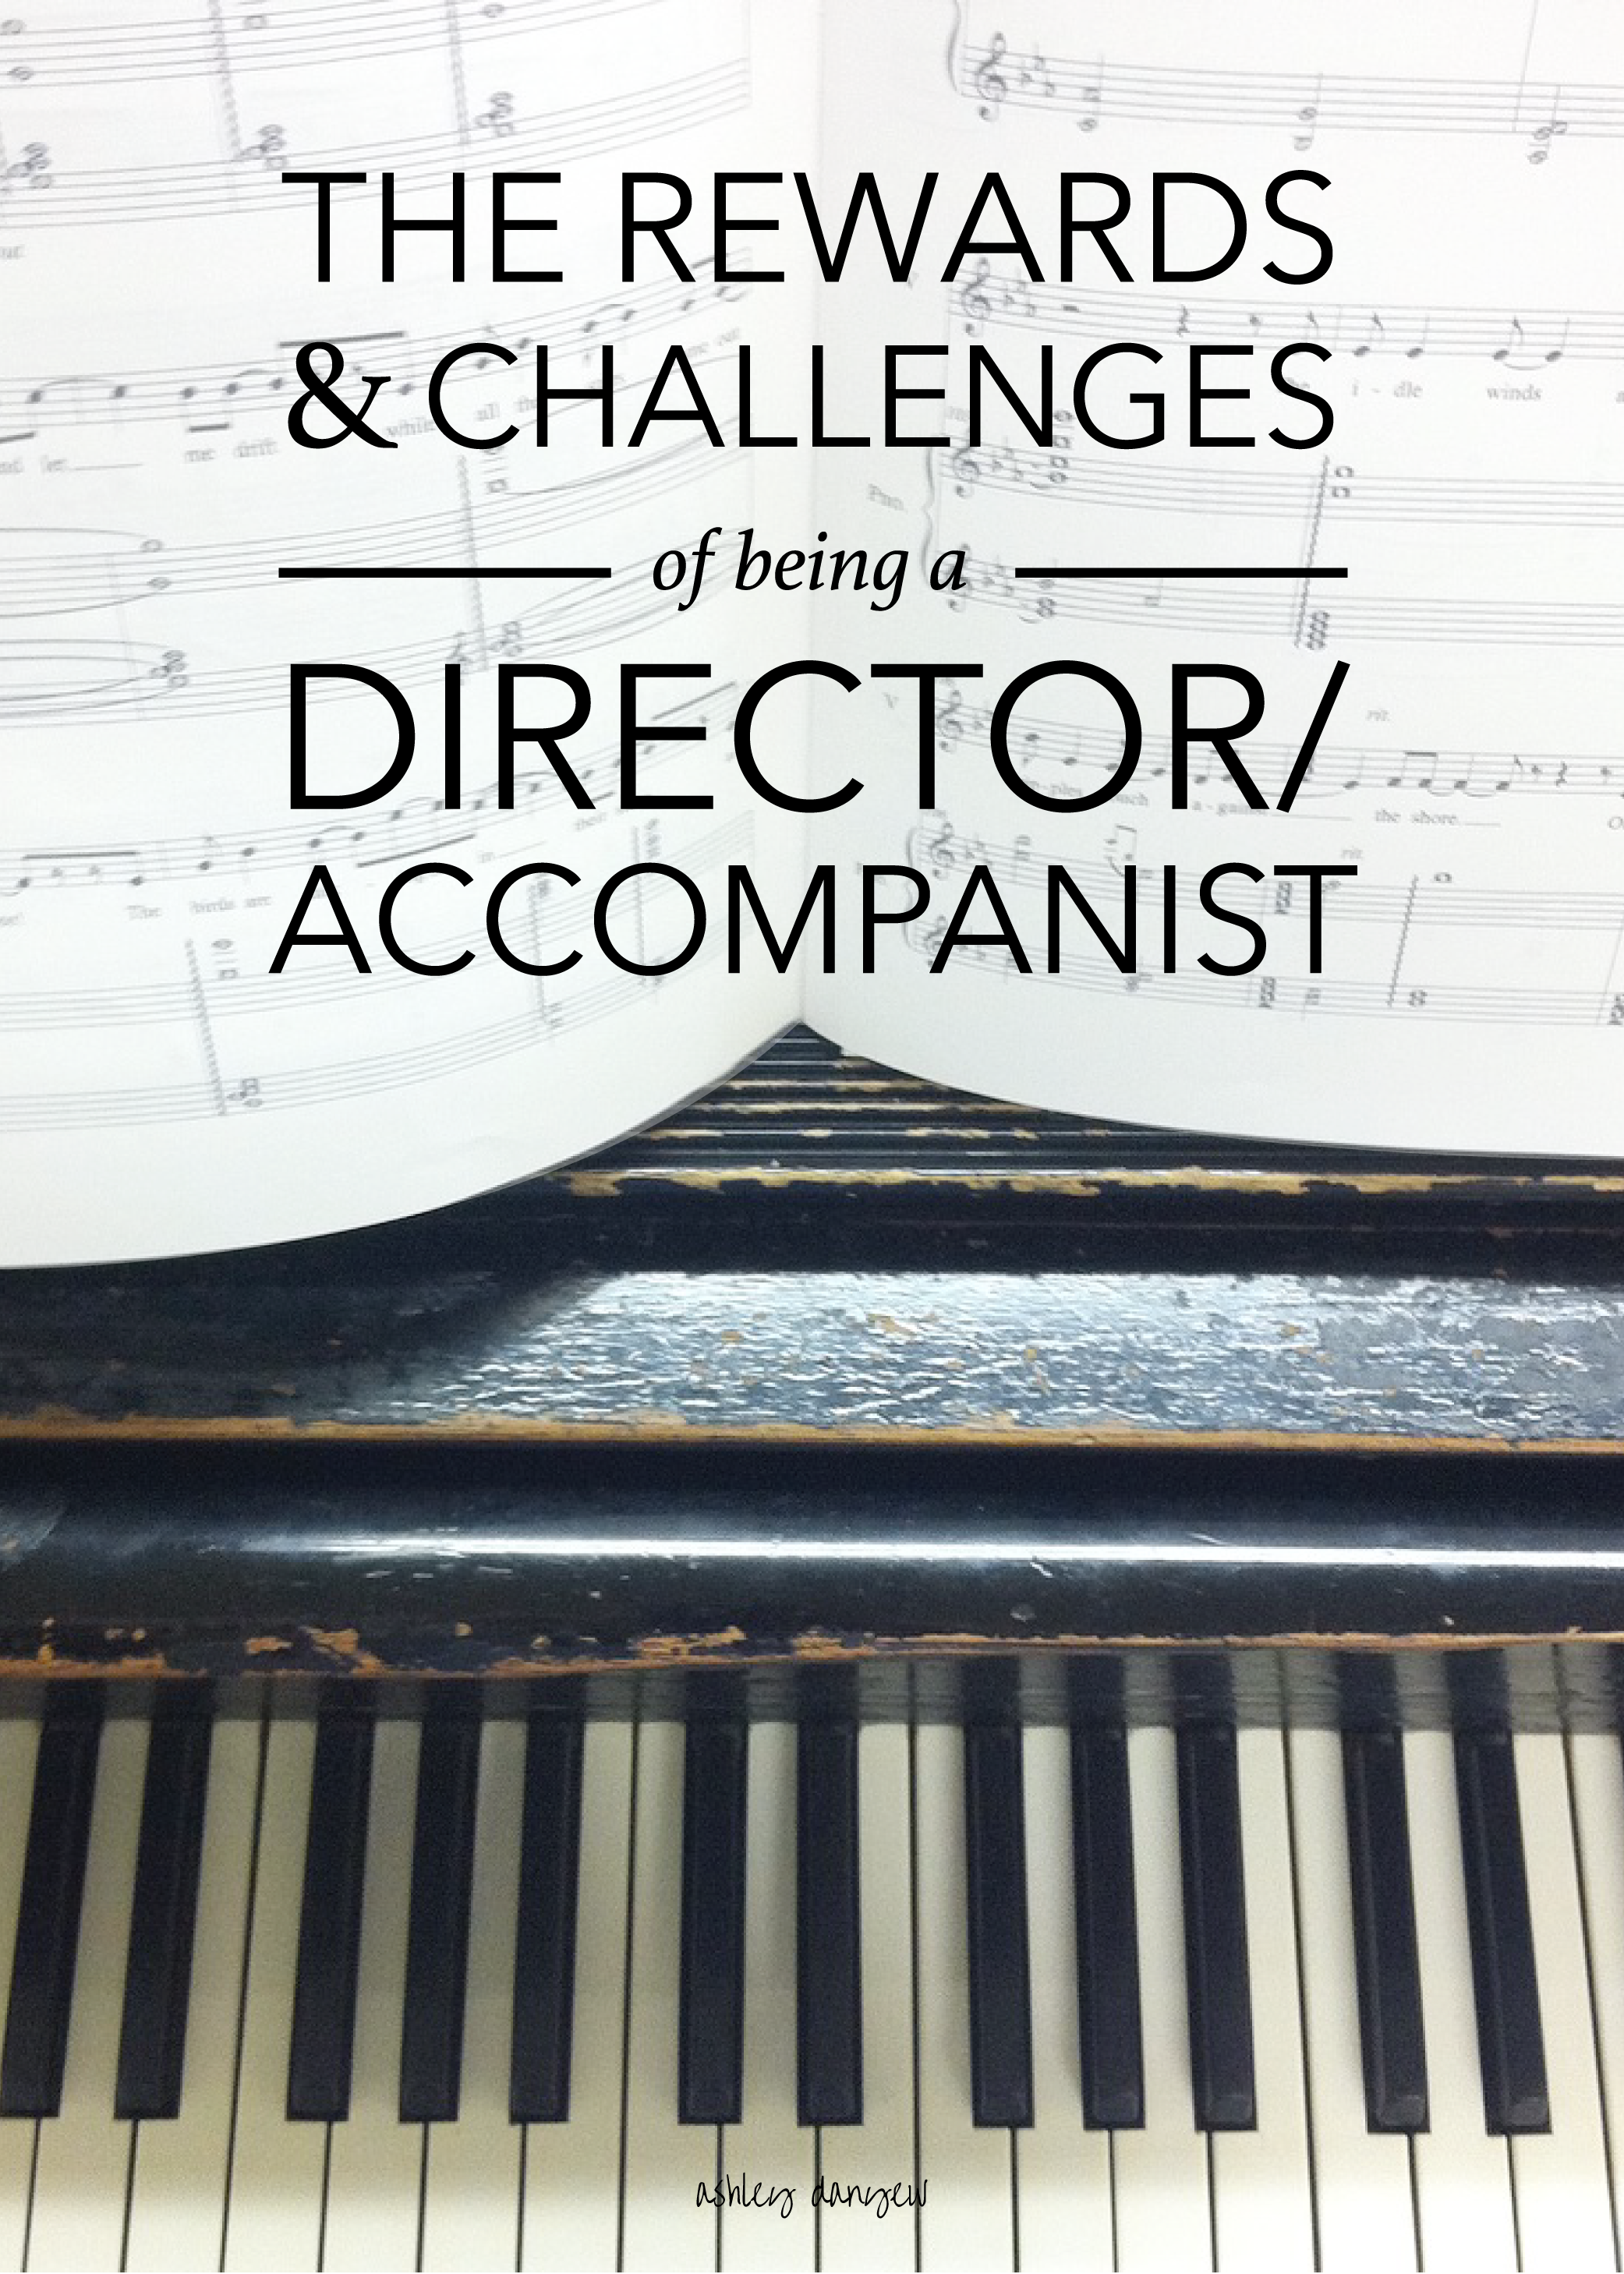 The rewards and challenges of being a church choir director/accompanist (+ a few pro tips and creative solutions!) | @ashleydanyew